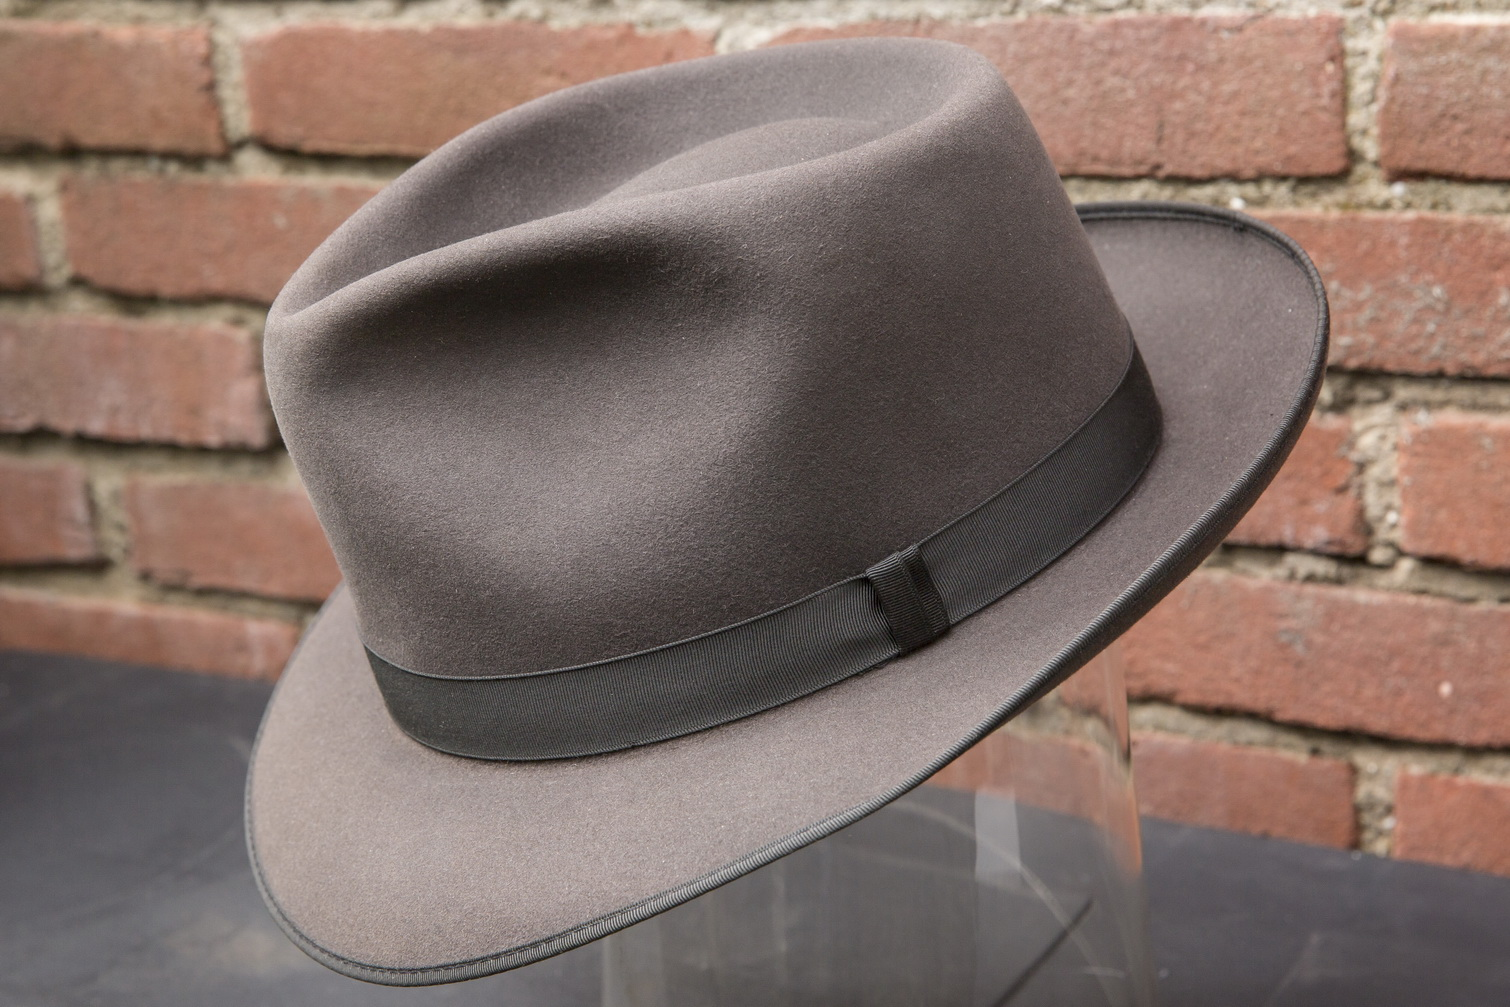 ad0439b67b0 ... Collectible Vintage Champ with Kashmir Finish Felt Fedora Hat size 7-18  online retailer 5c40d  champ feather01.jpg ... sale retailer ef197 d3e1a ...